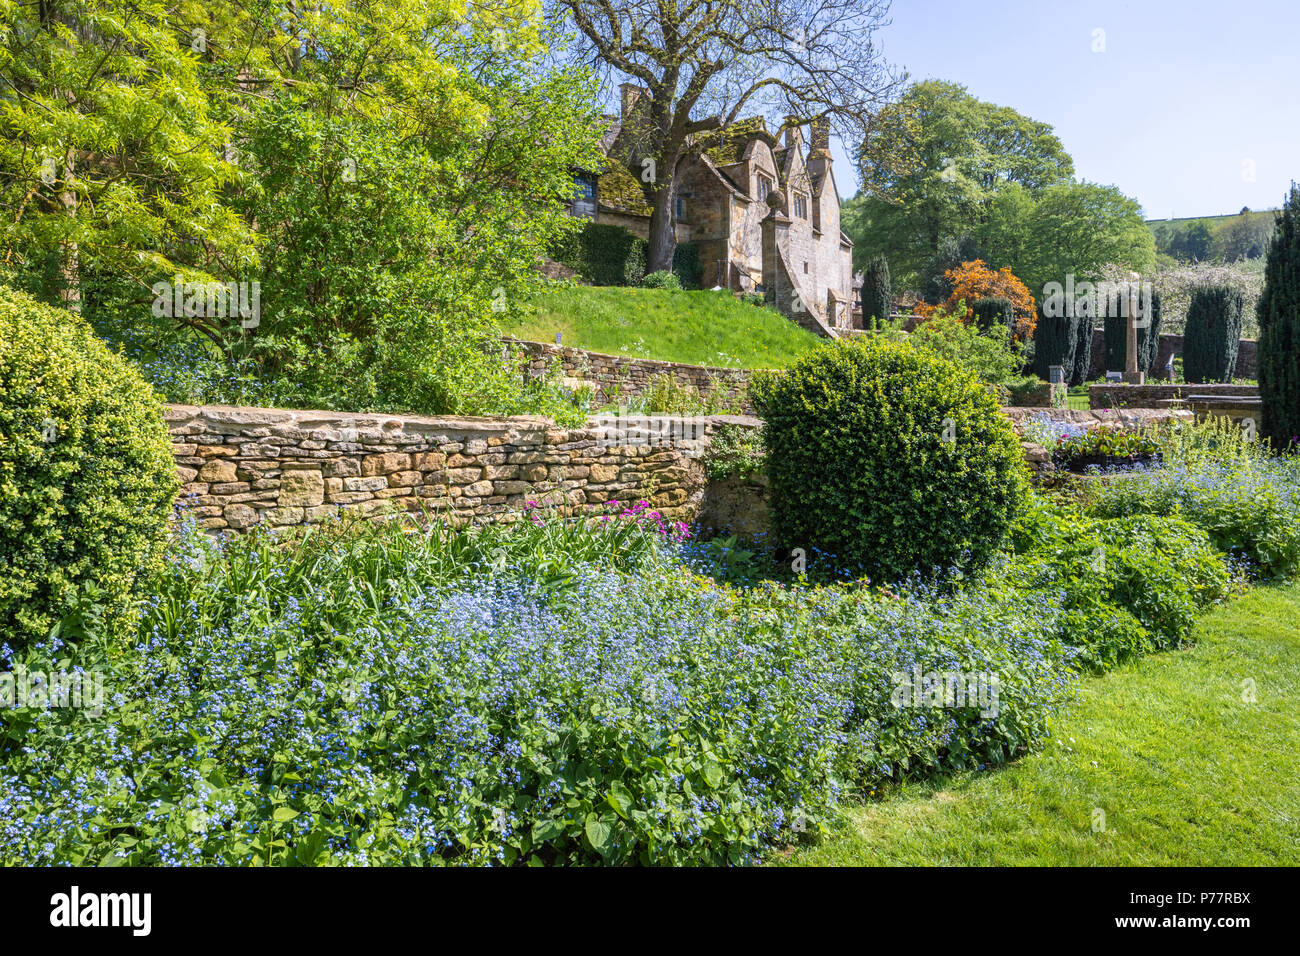 The gardens at Snowshill Manor in the Cotswold village of Snowshill, Gloucestershire UK Stock Photo